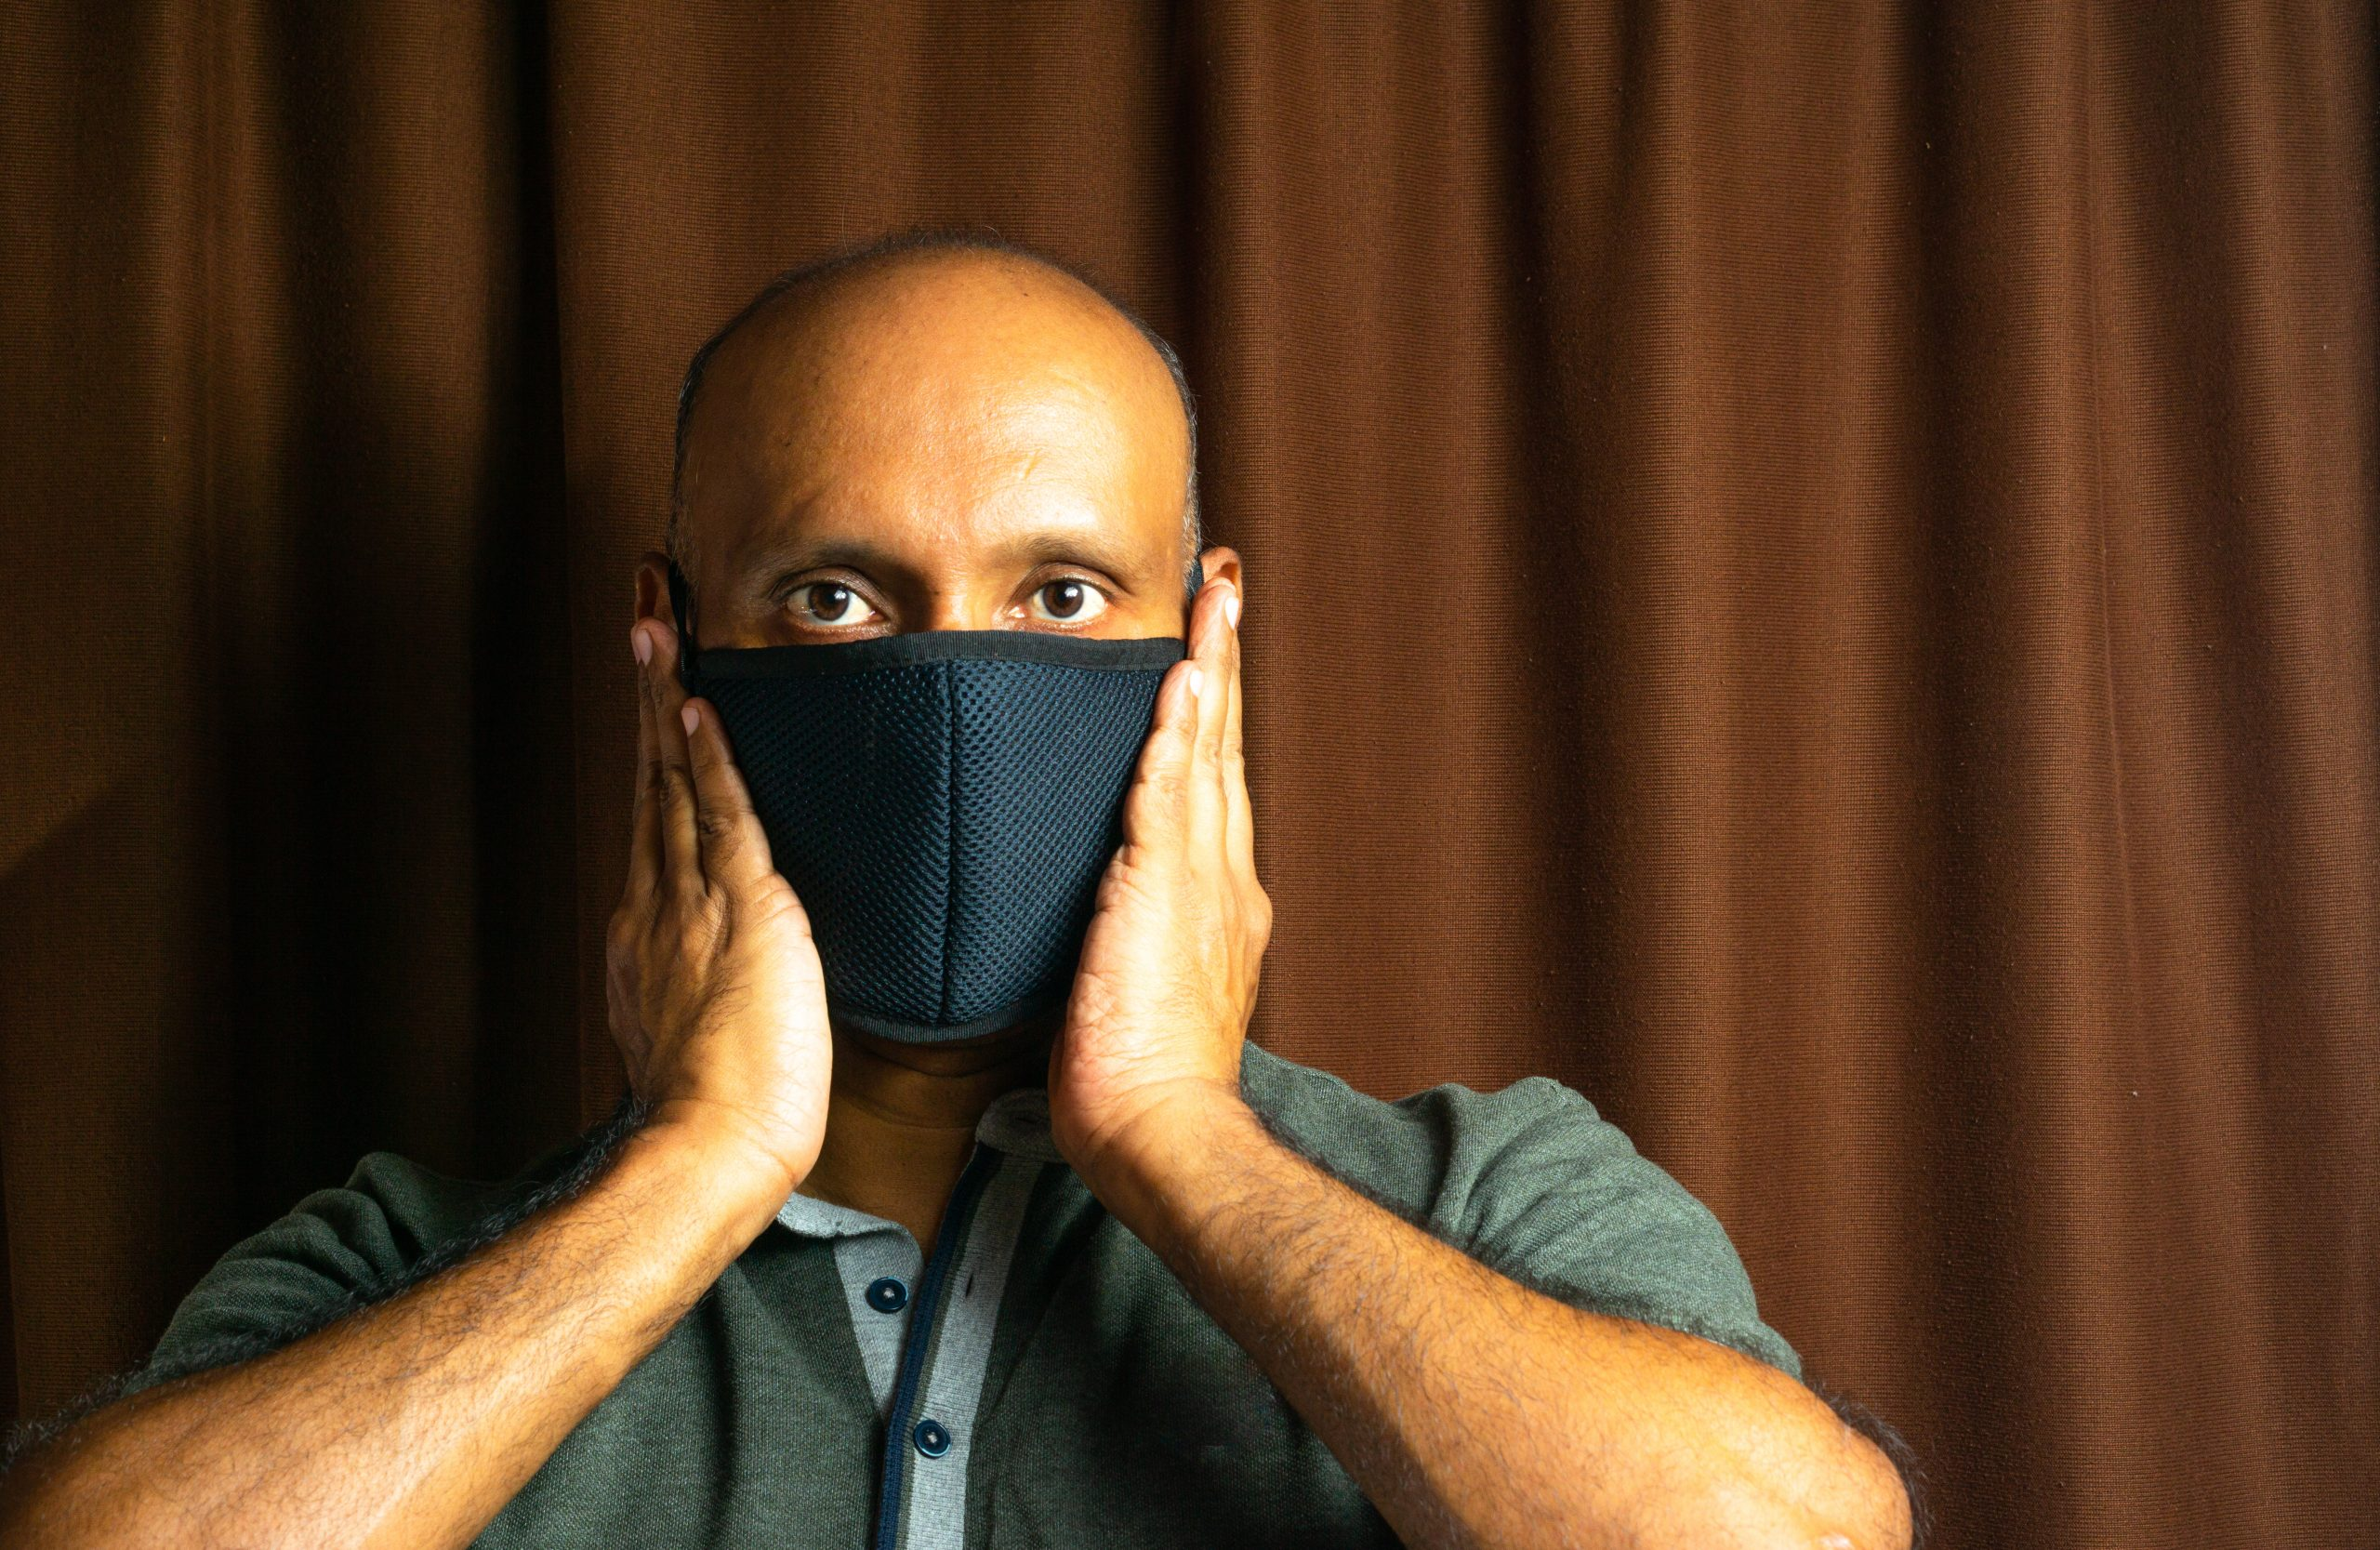 Man putting mask on his mouth